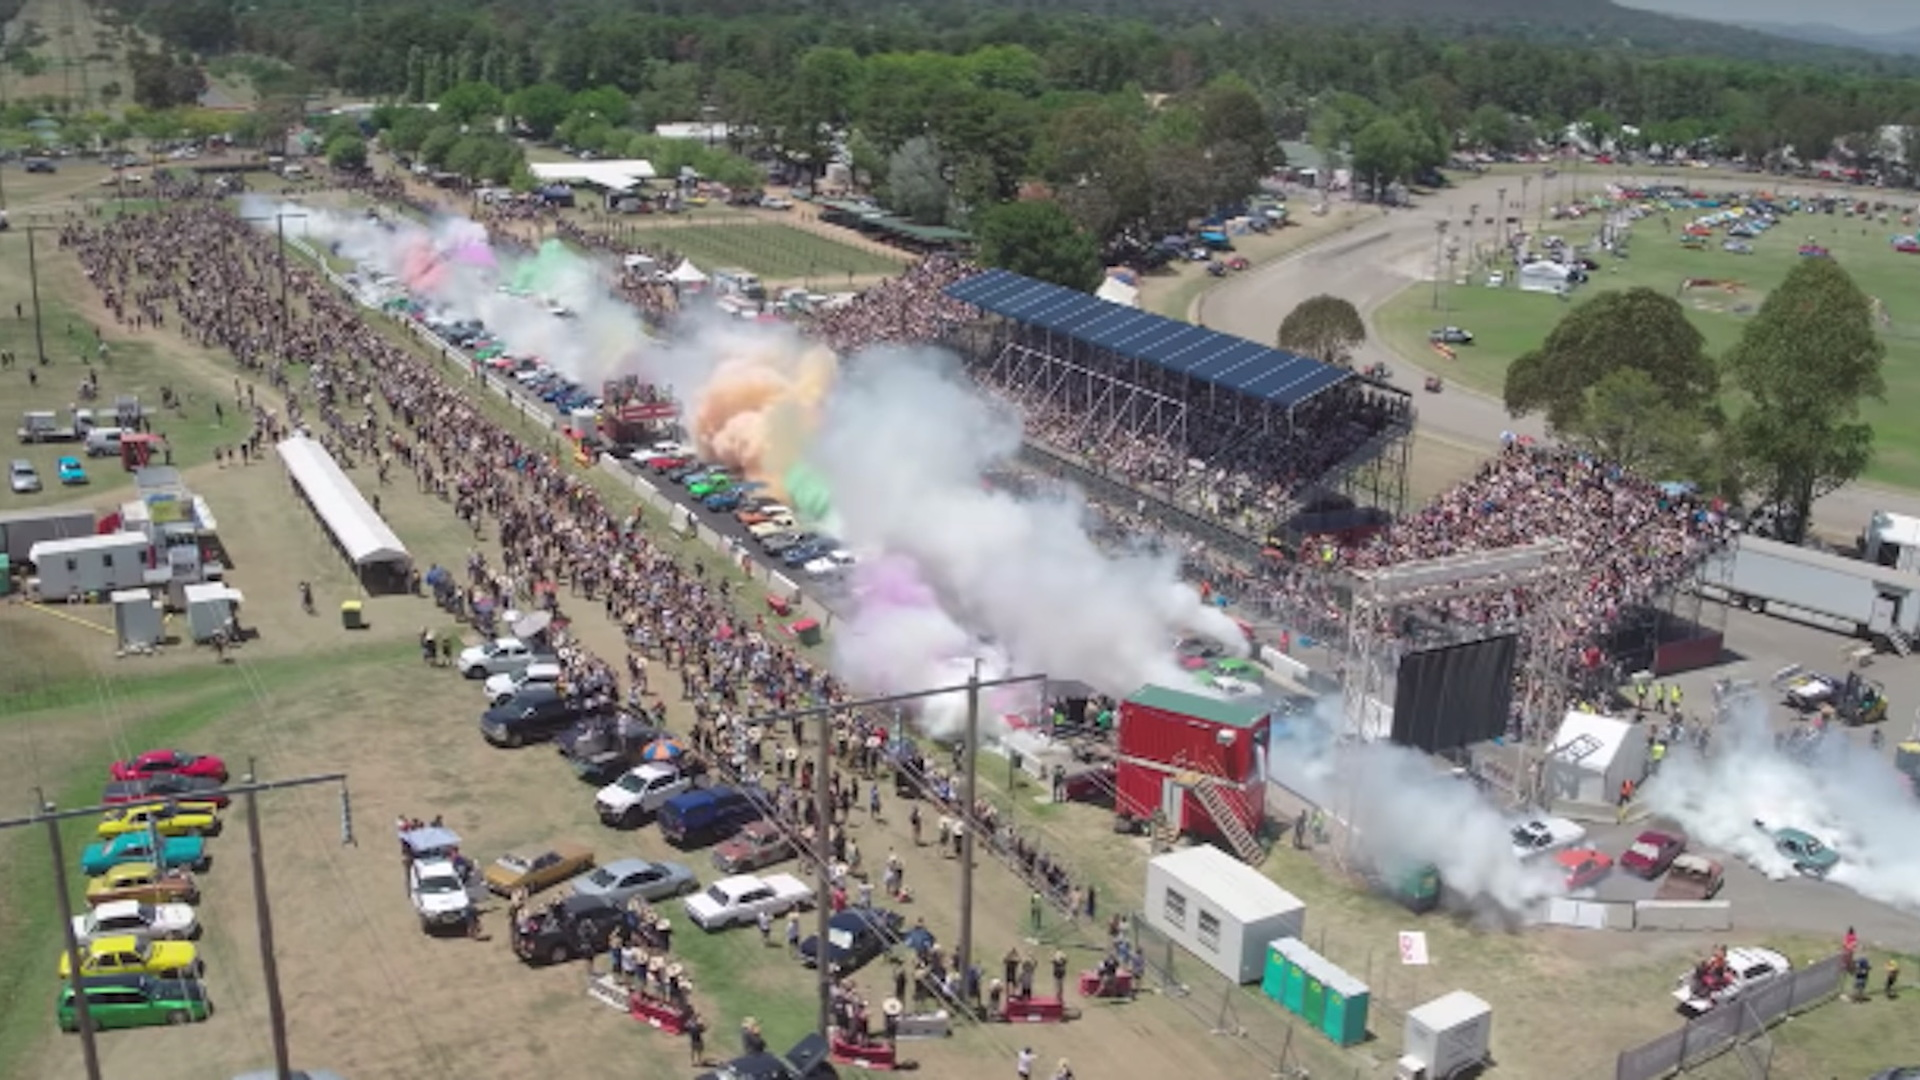 Australians retake biggest burnout world record at Summer Nationals 2019